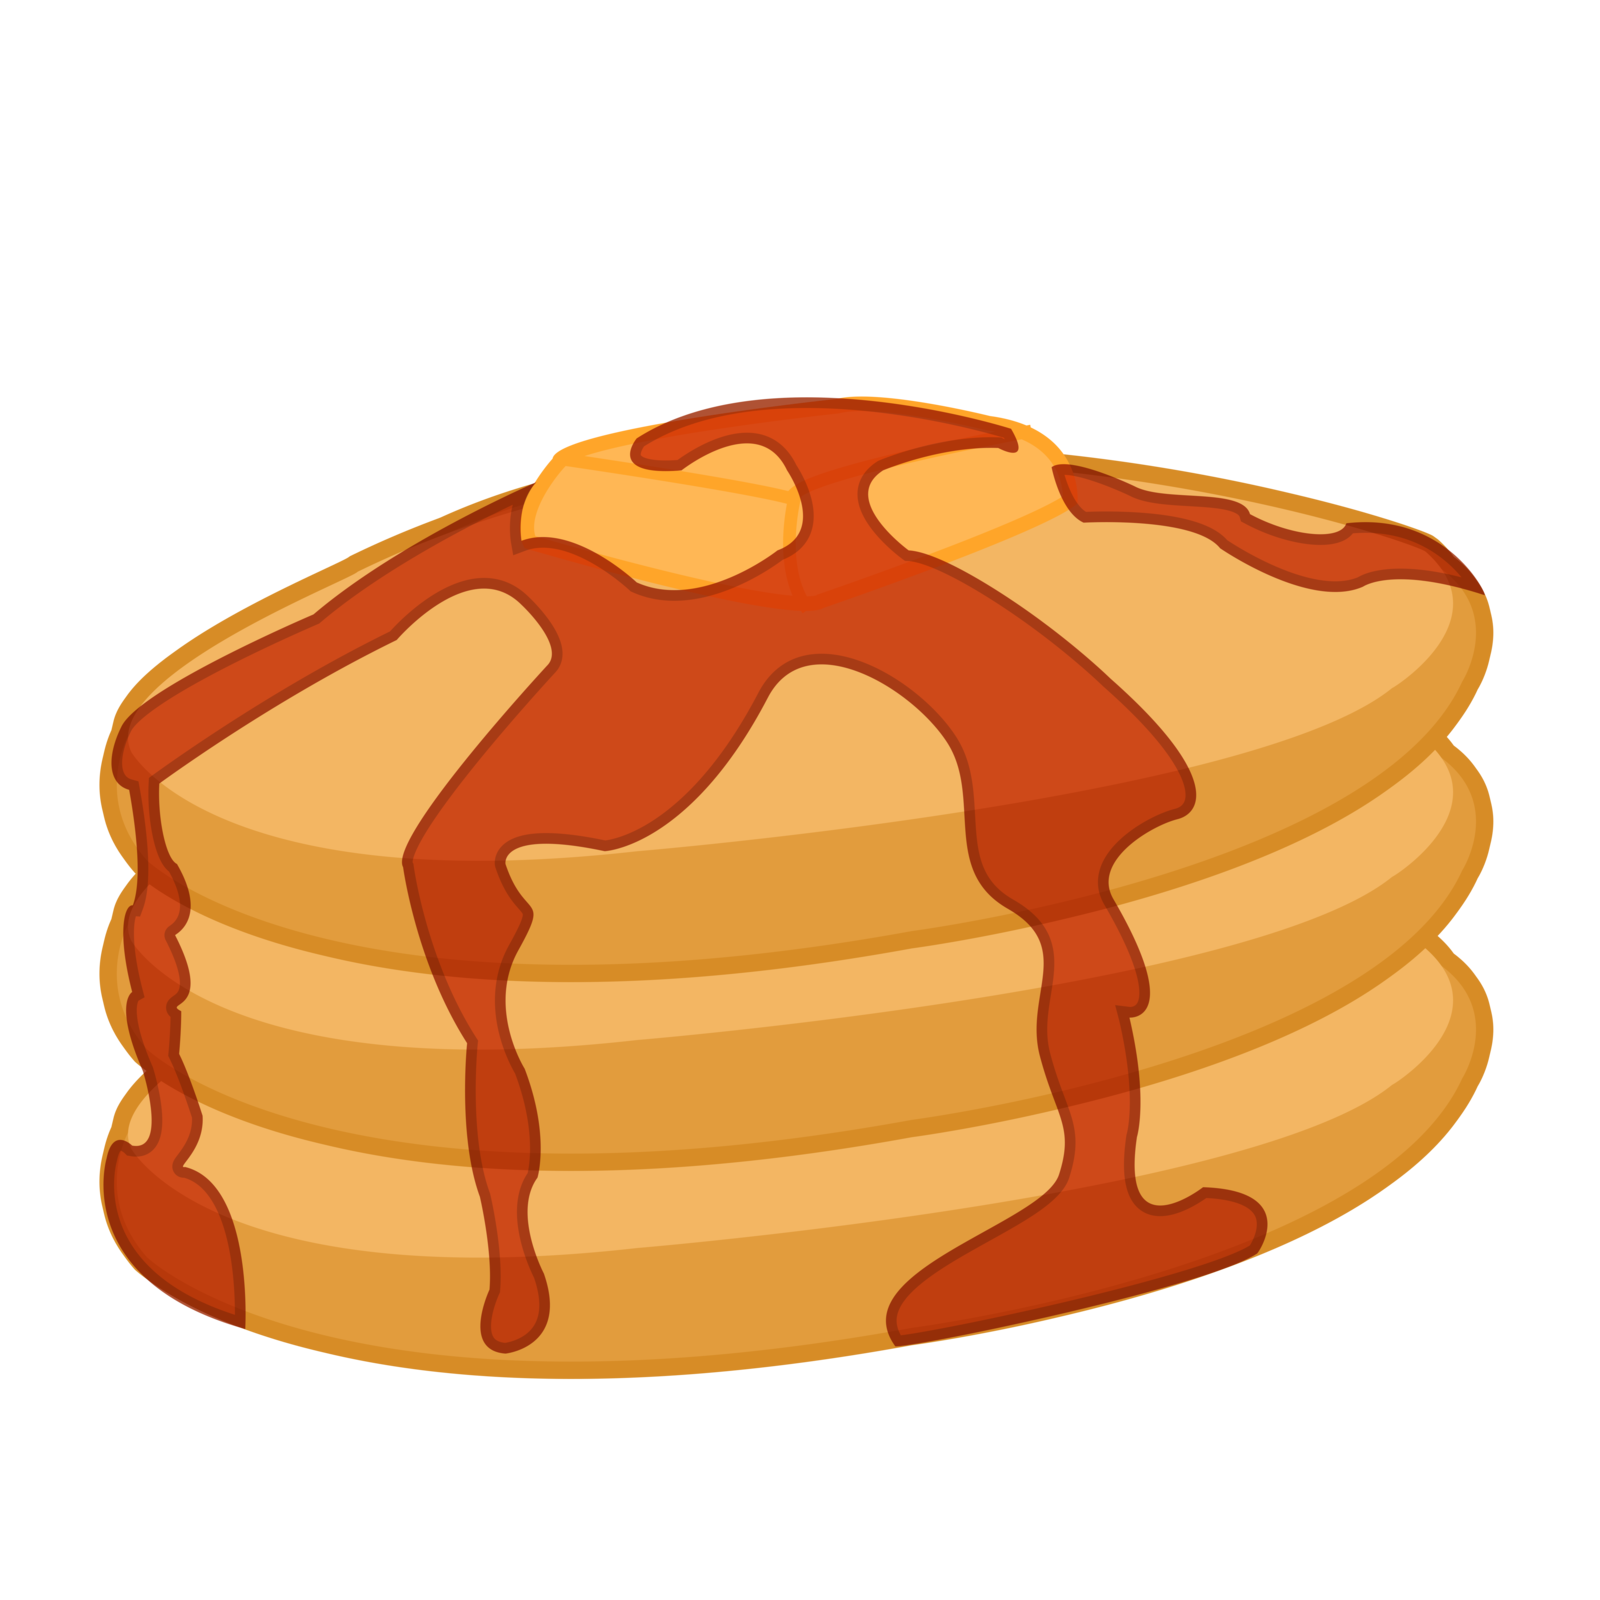 Clipart coffee pancake. Delta house of pancakes